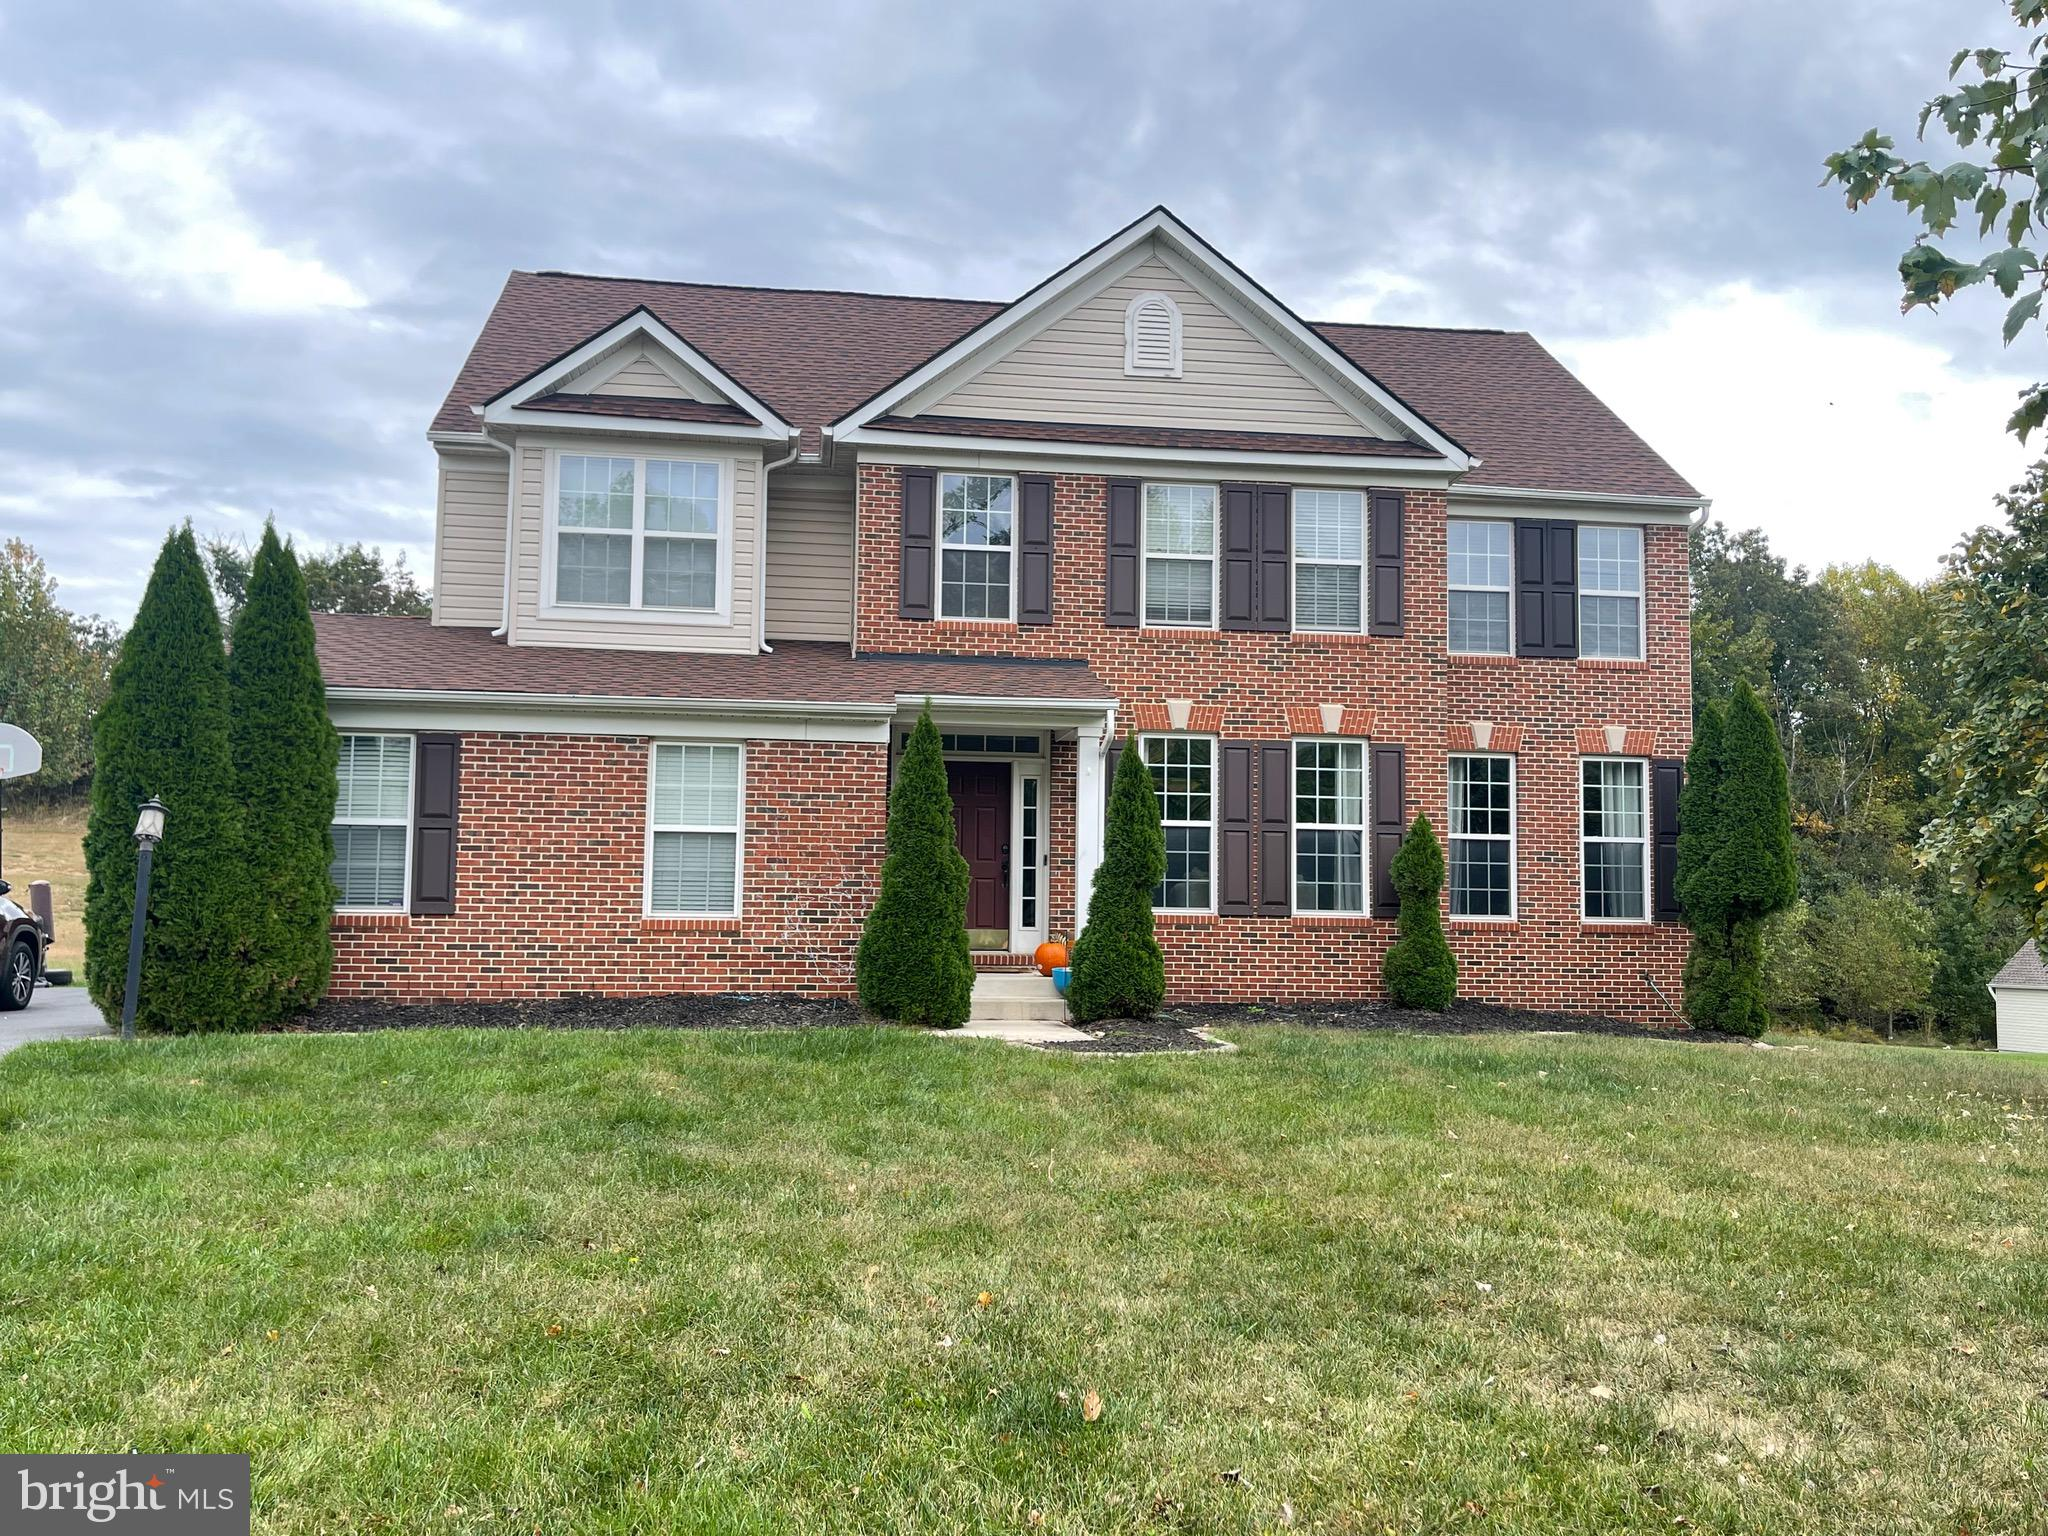 **SHORT SALE** Come see this 4 bedroom, 3 full bathroom Colonial on 1/2 acre lot. 2 story foyer. Ful